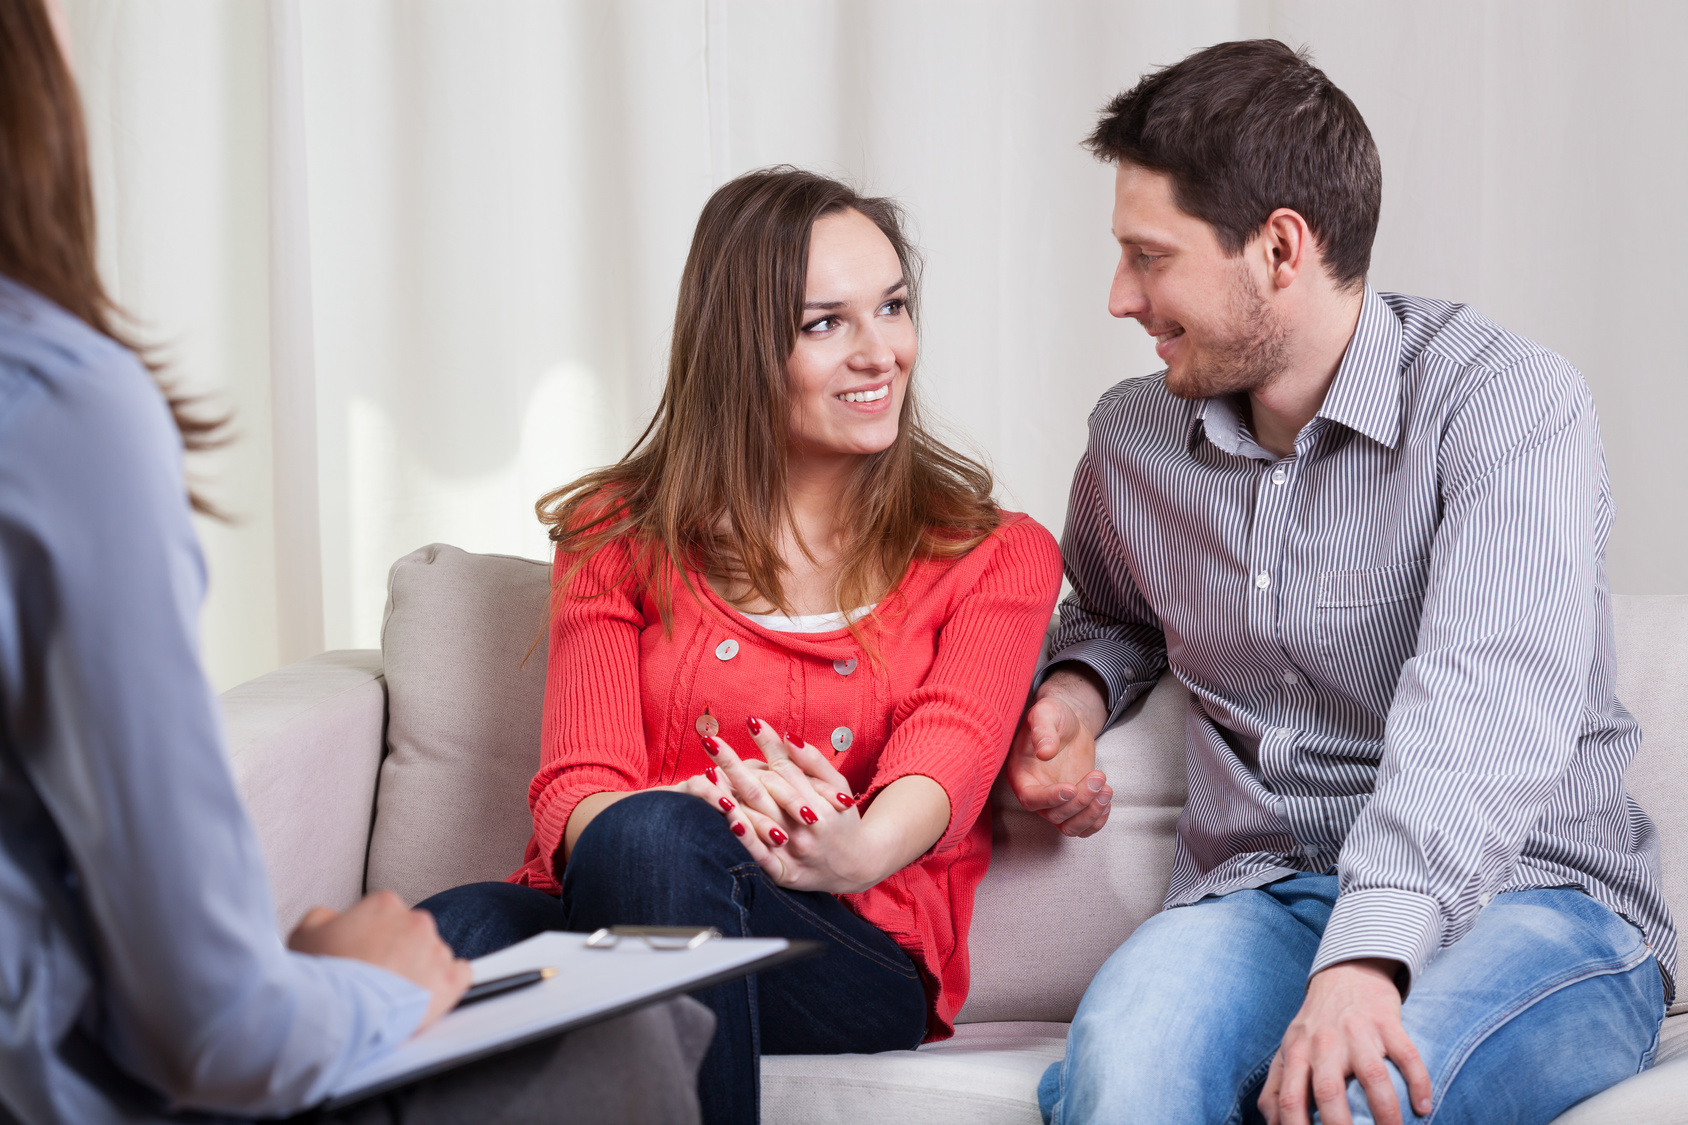 Beauty couple solved their problems on psychotherapy